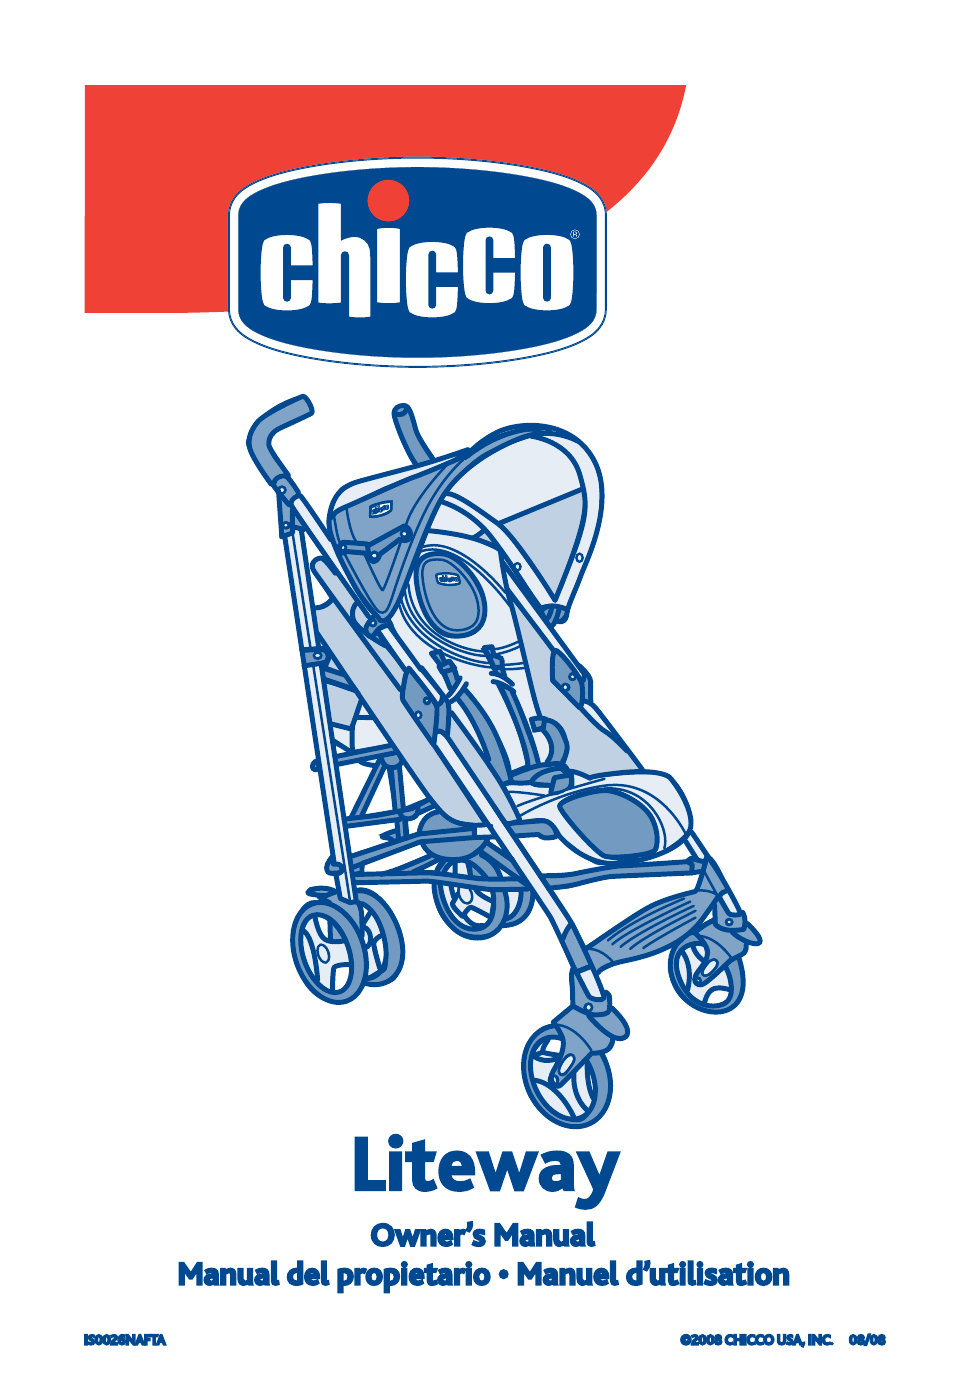 chicco liteway stroller owner s manual free pdf download 21 pages rh manualagent com Chicco Baby Chicco NextFit